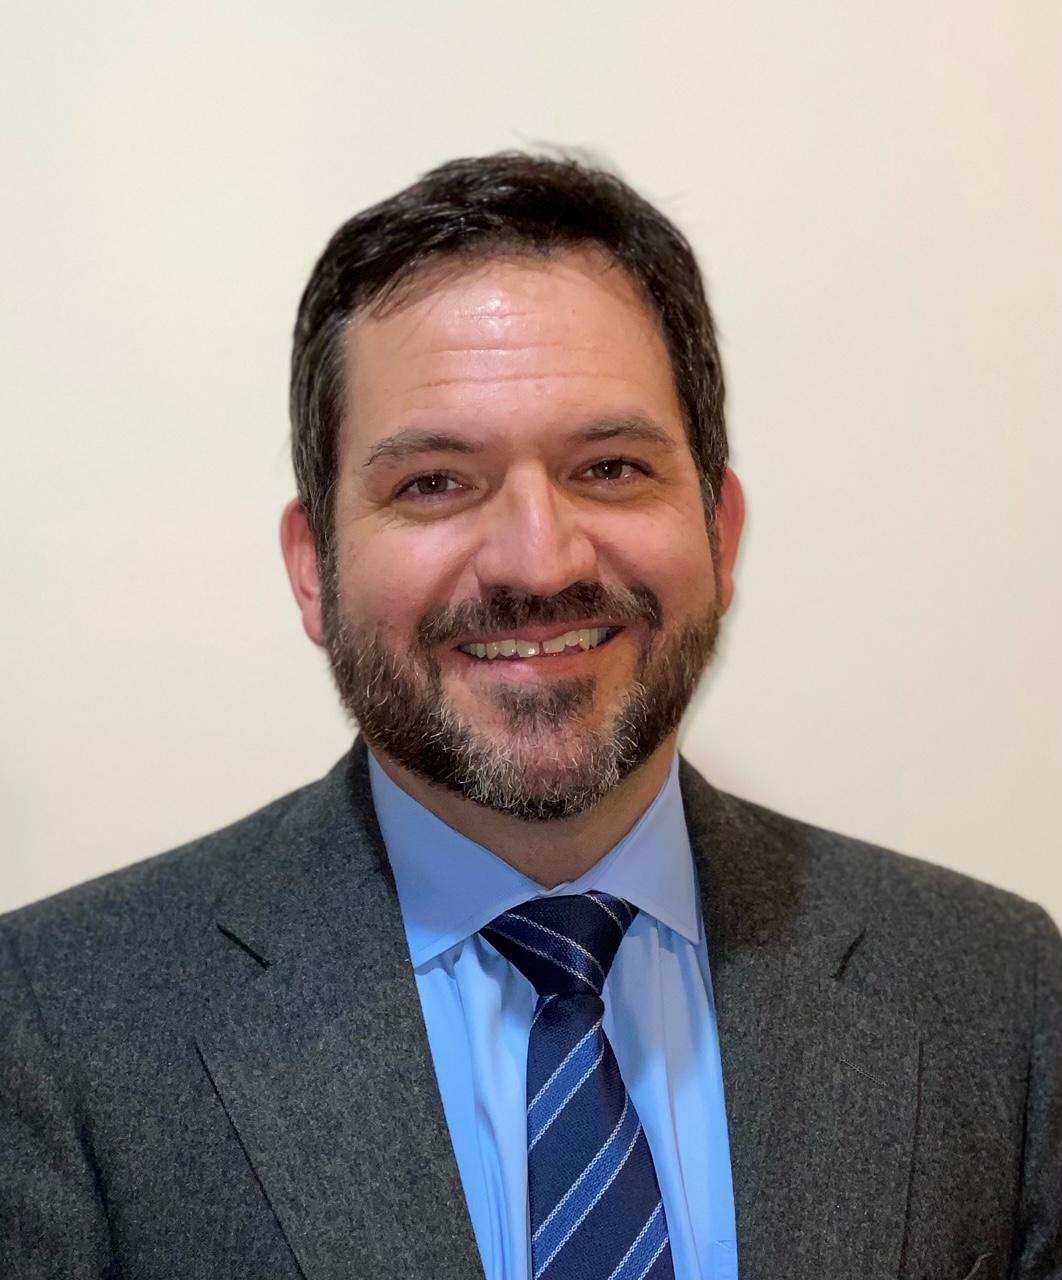 Richard Shane Brown, M.D., Board Certified General and Laparoscopic Surgery